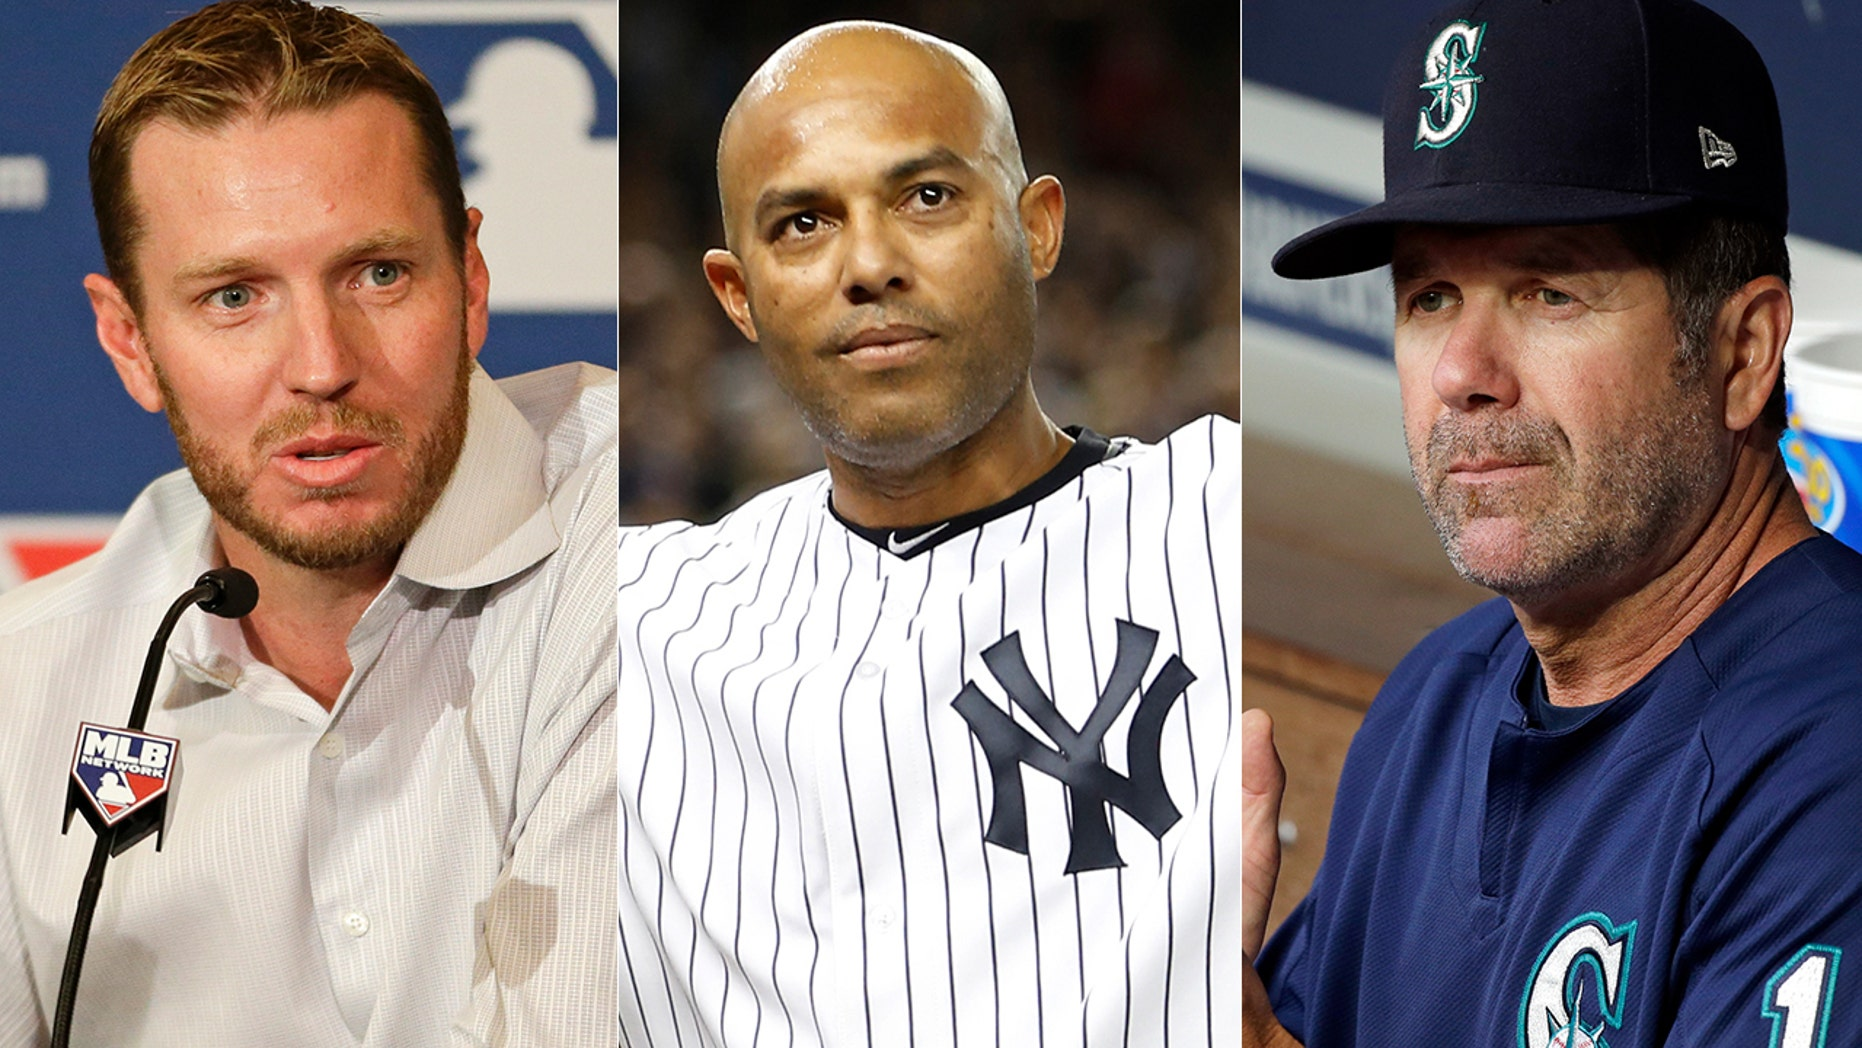 Roy Halladay, Mariano Rivera and Edgar Martinez were among those voted into the Hall of Fame.